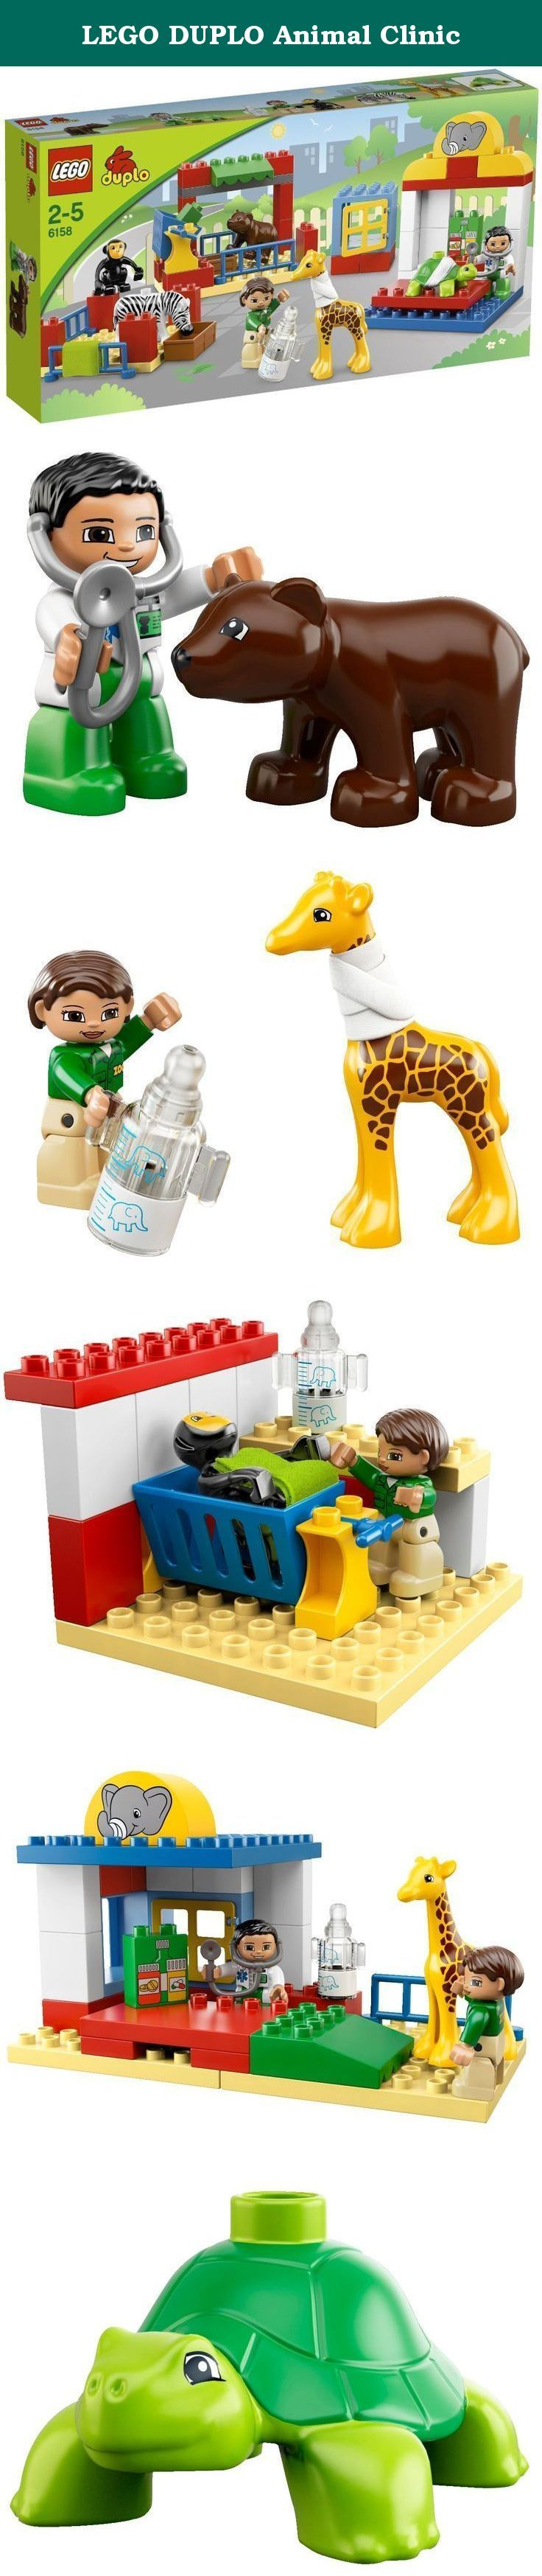 LEGO DUPLO Animal Clinic. At the Animal Clinic, the vets are helping the poorly animals get well again. Whether they are putting a bandage around the giraffe's neck or feeding the baby animals warm milk, there's always something to do for the busy vets. Includes 5 LEGO® DUPLO® animals and 2 vet DUPLO figures.